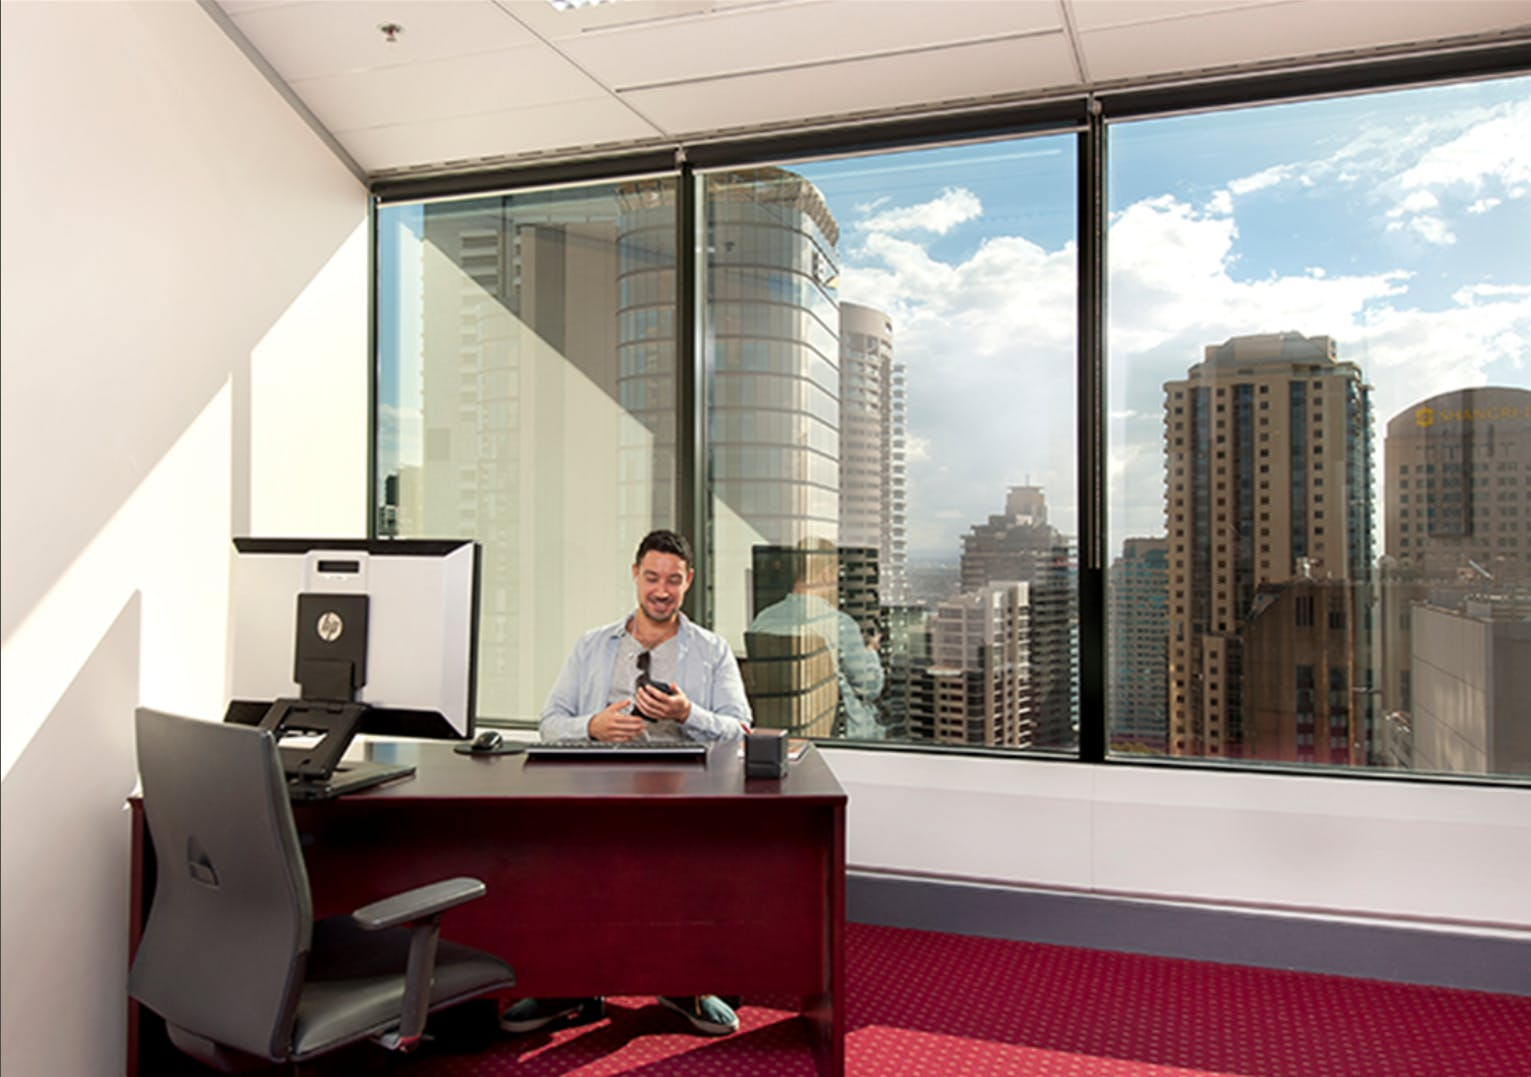 Premium Day Suite with views to inspire, private office at AMP Tower, image 1